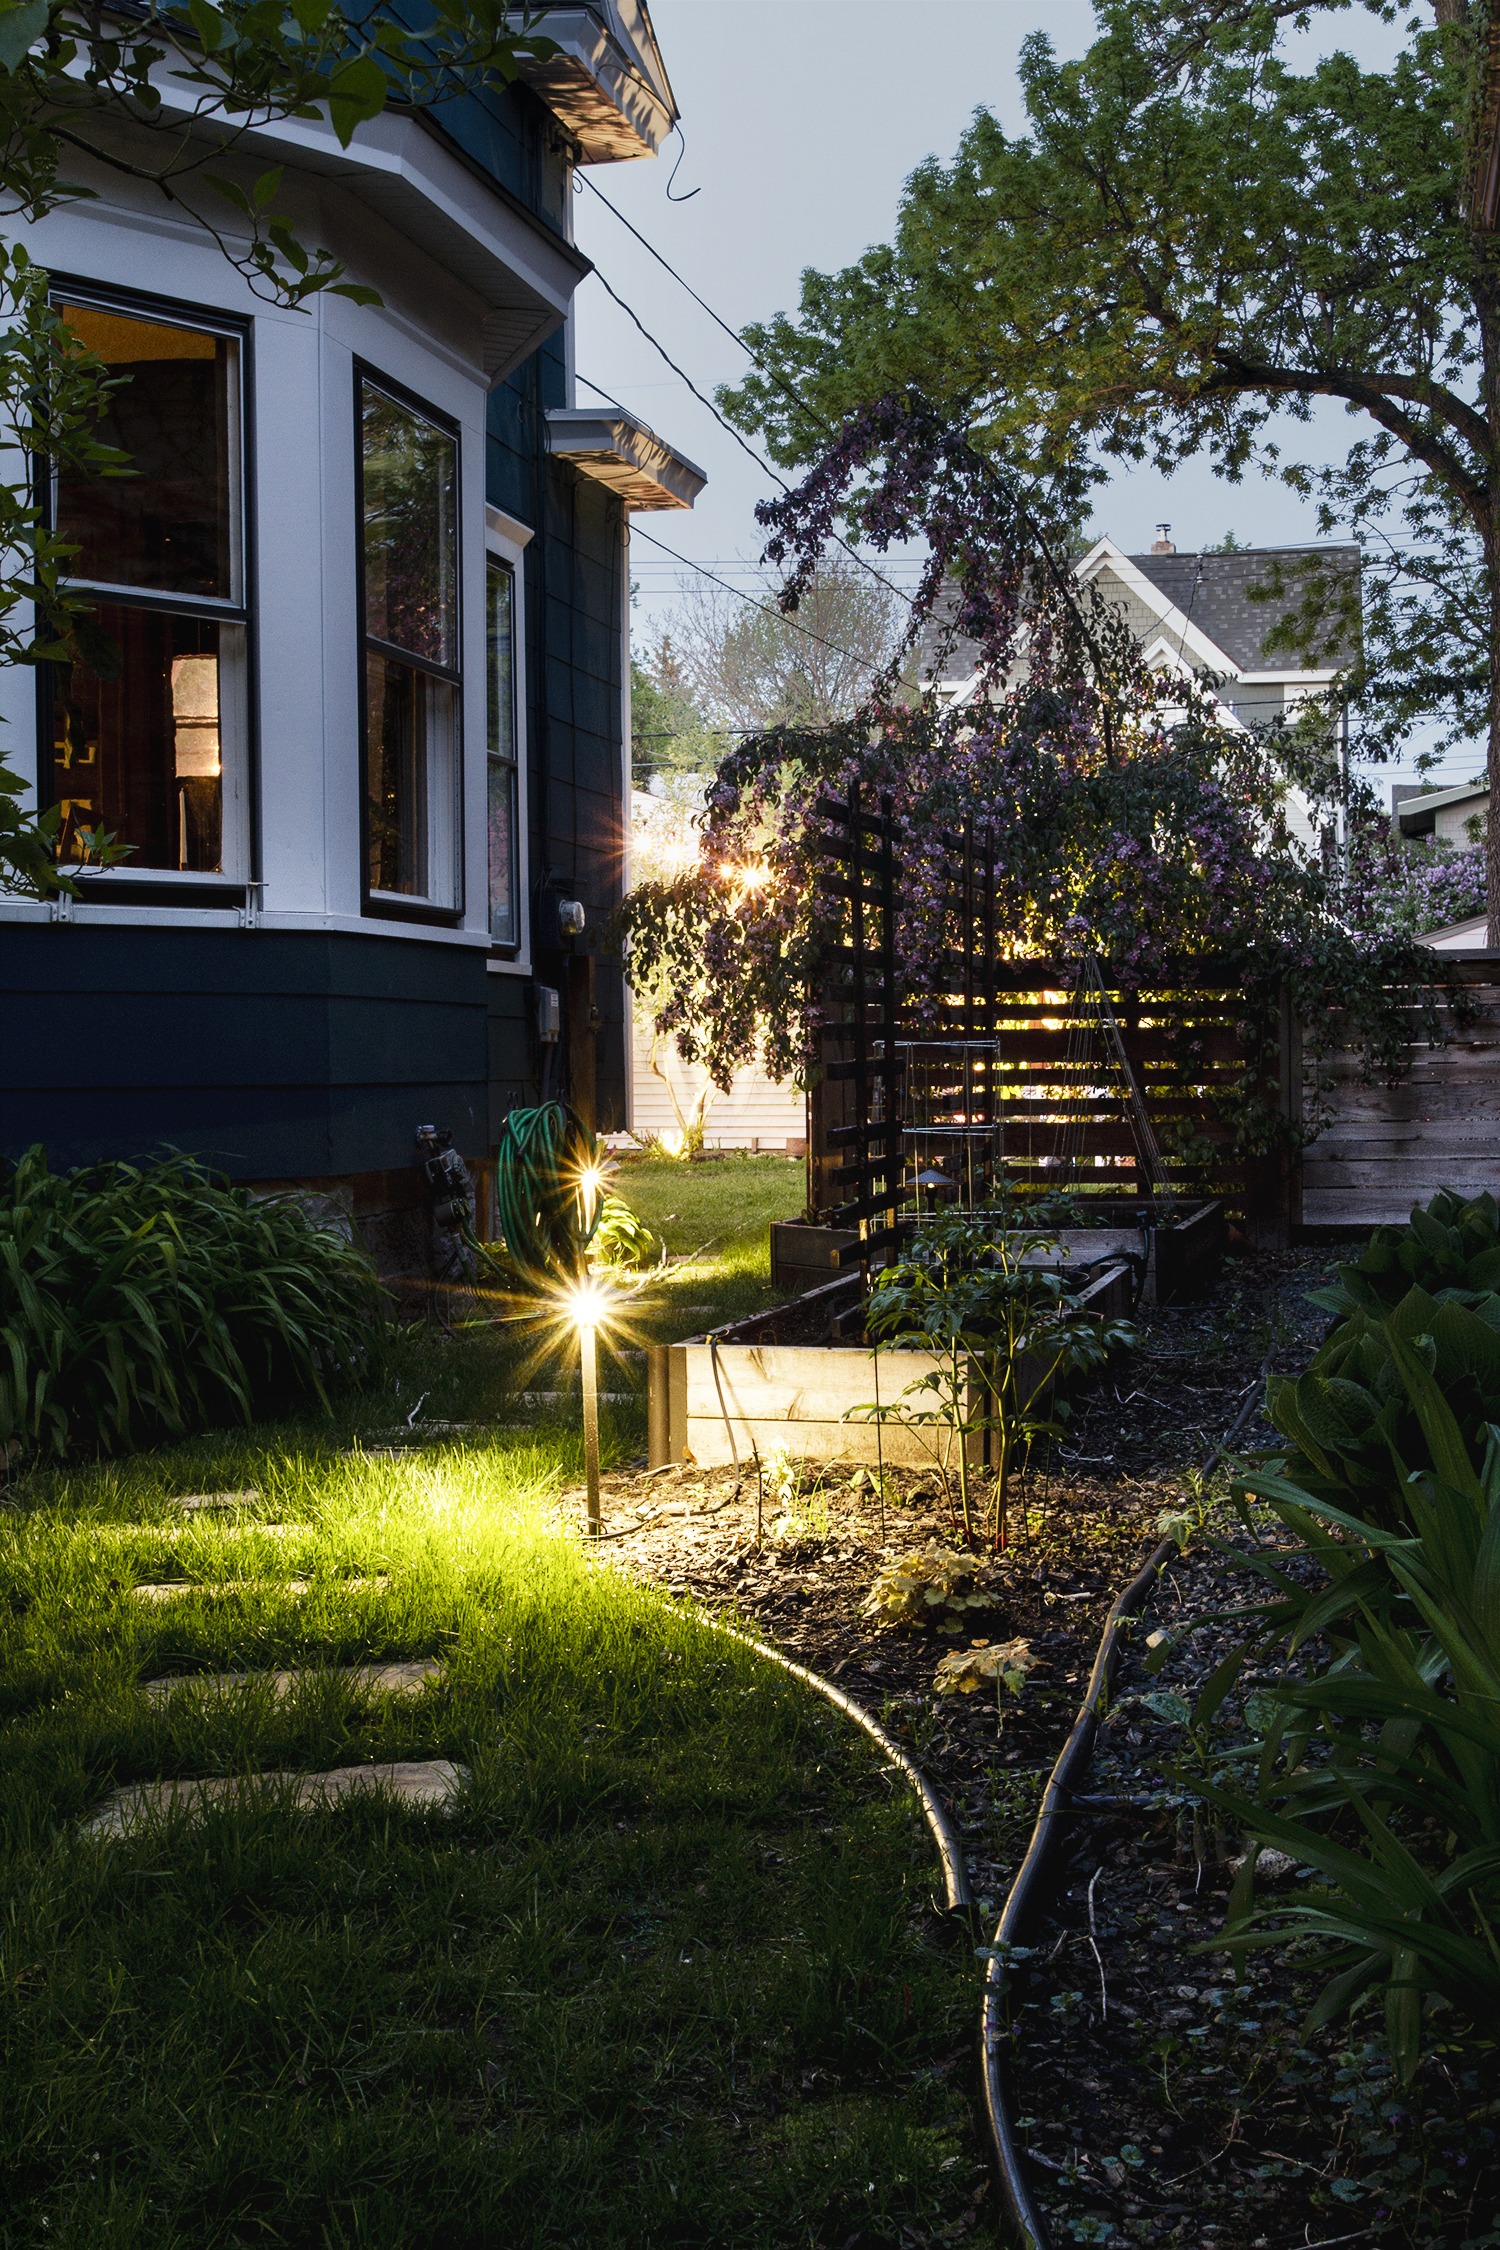 Easy to Install Low Voltage Outdoor Lighting - Deuce Cities Henhouse